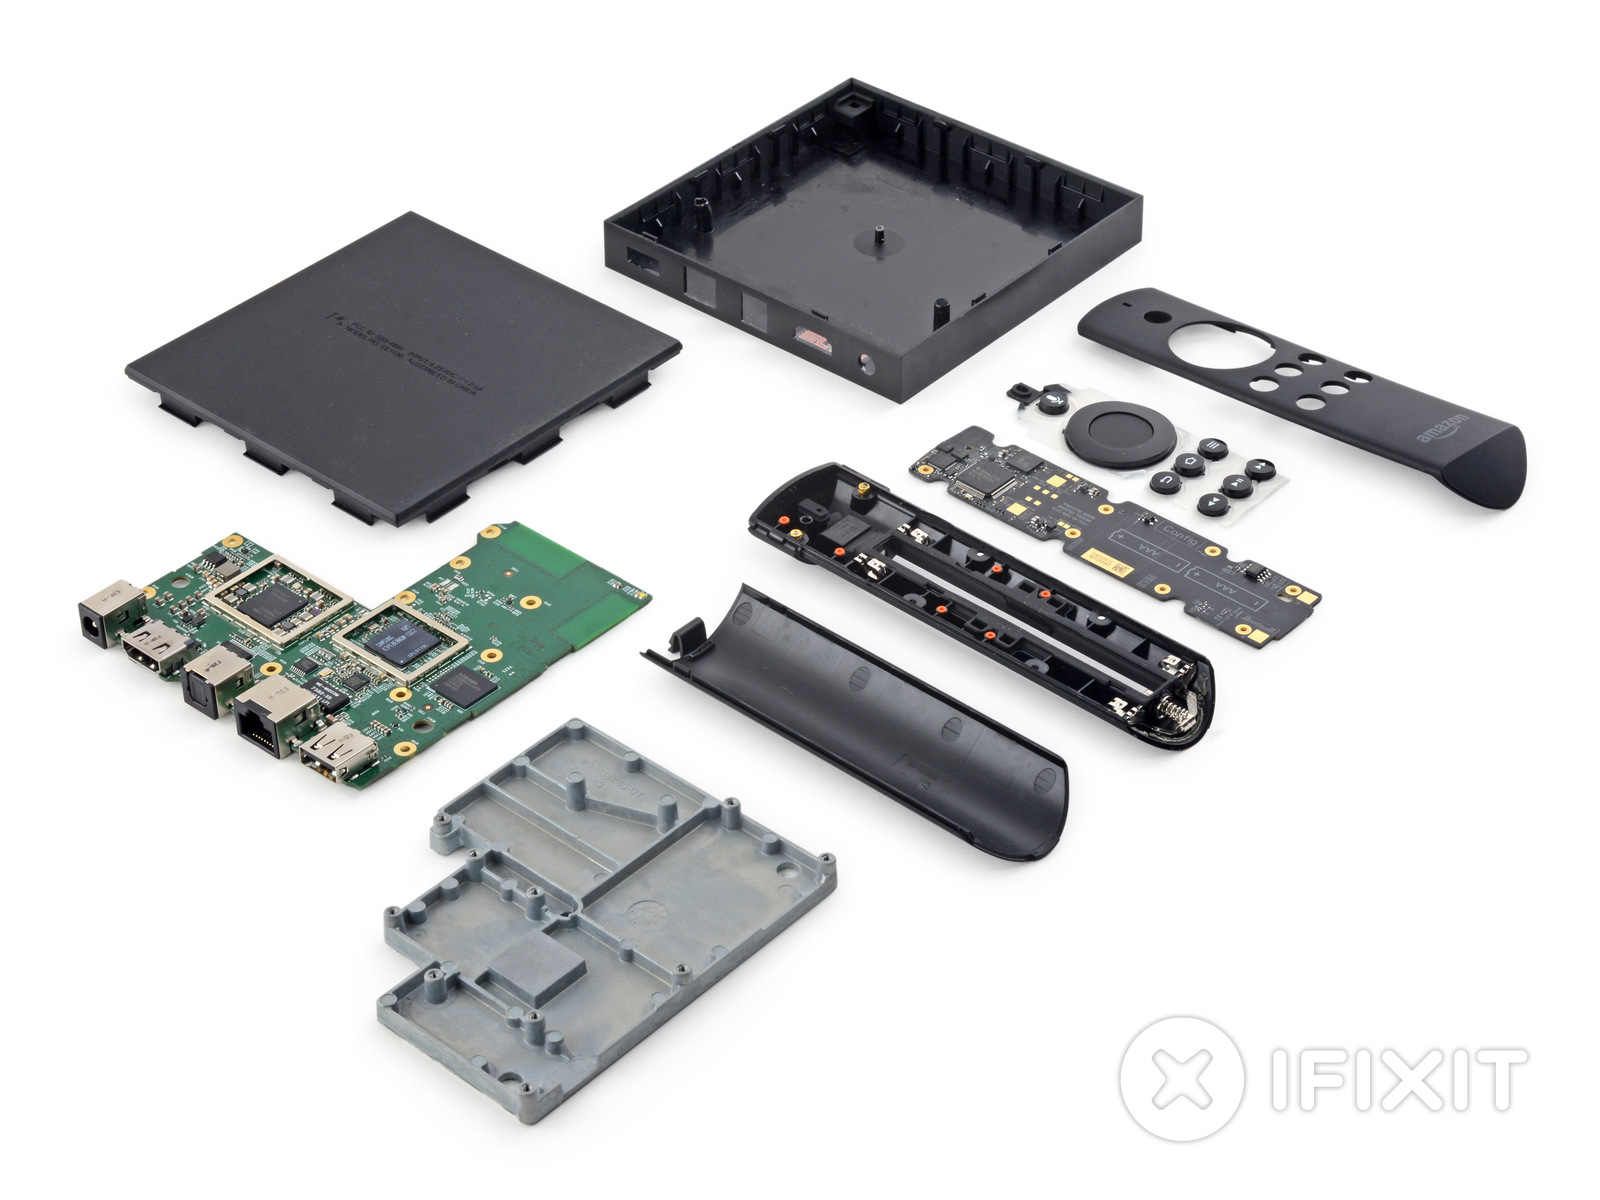 New 2014 Mac mini, unboxing and, teardown, other World IPhone Nyheder, guide og test af iPhone